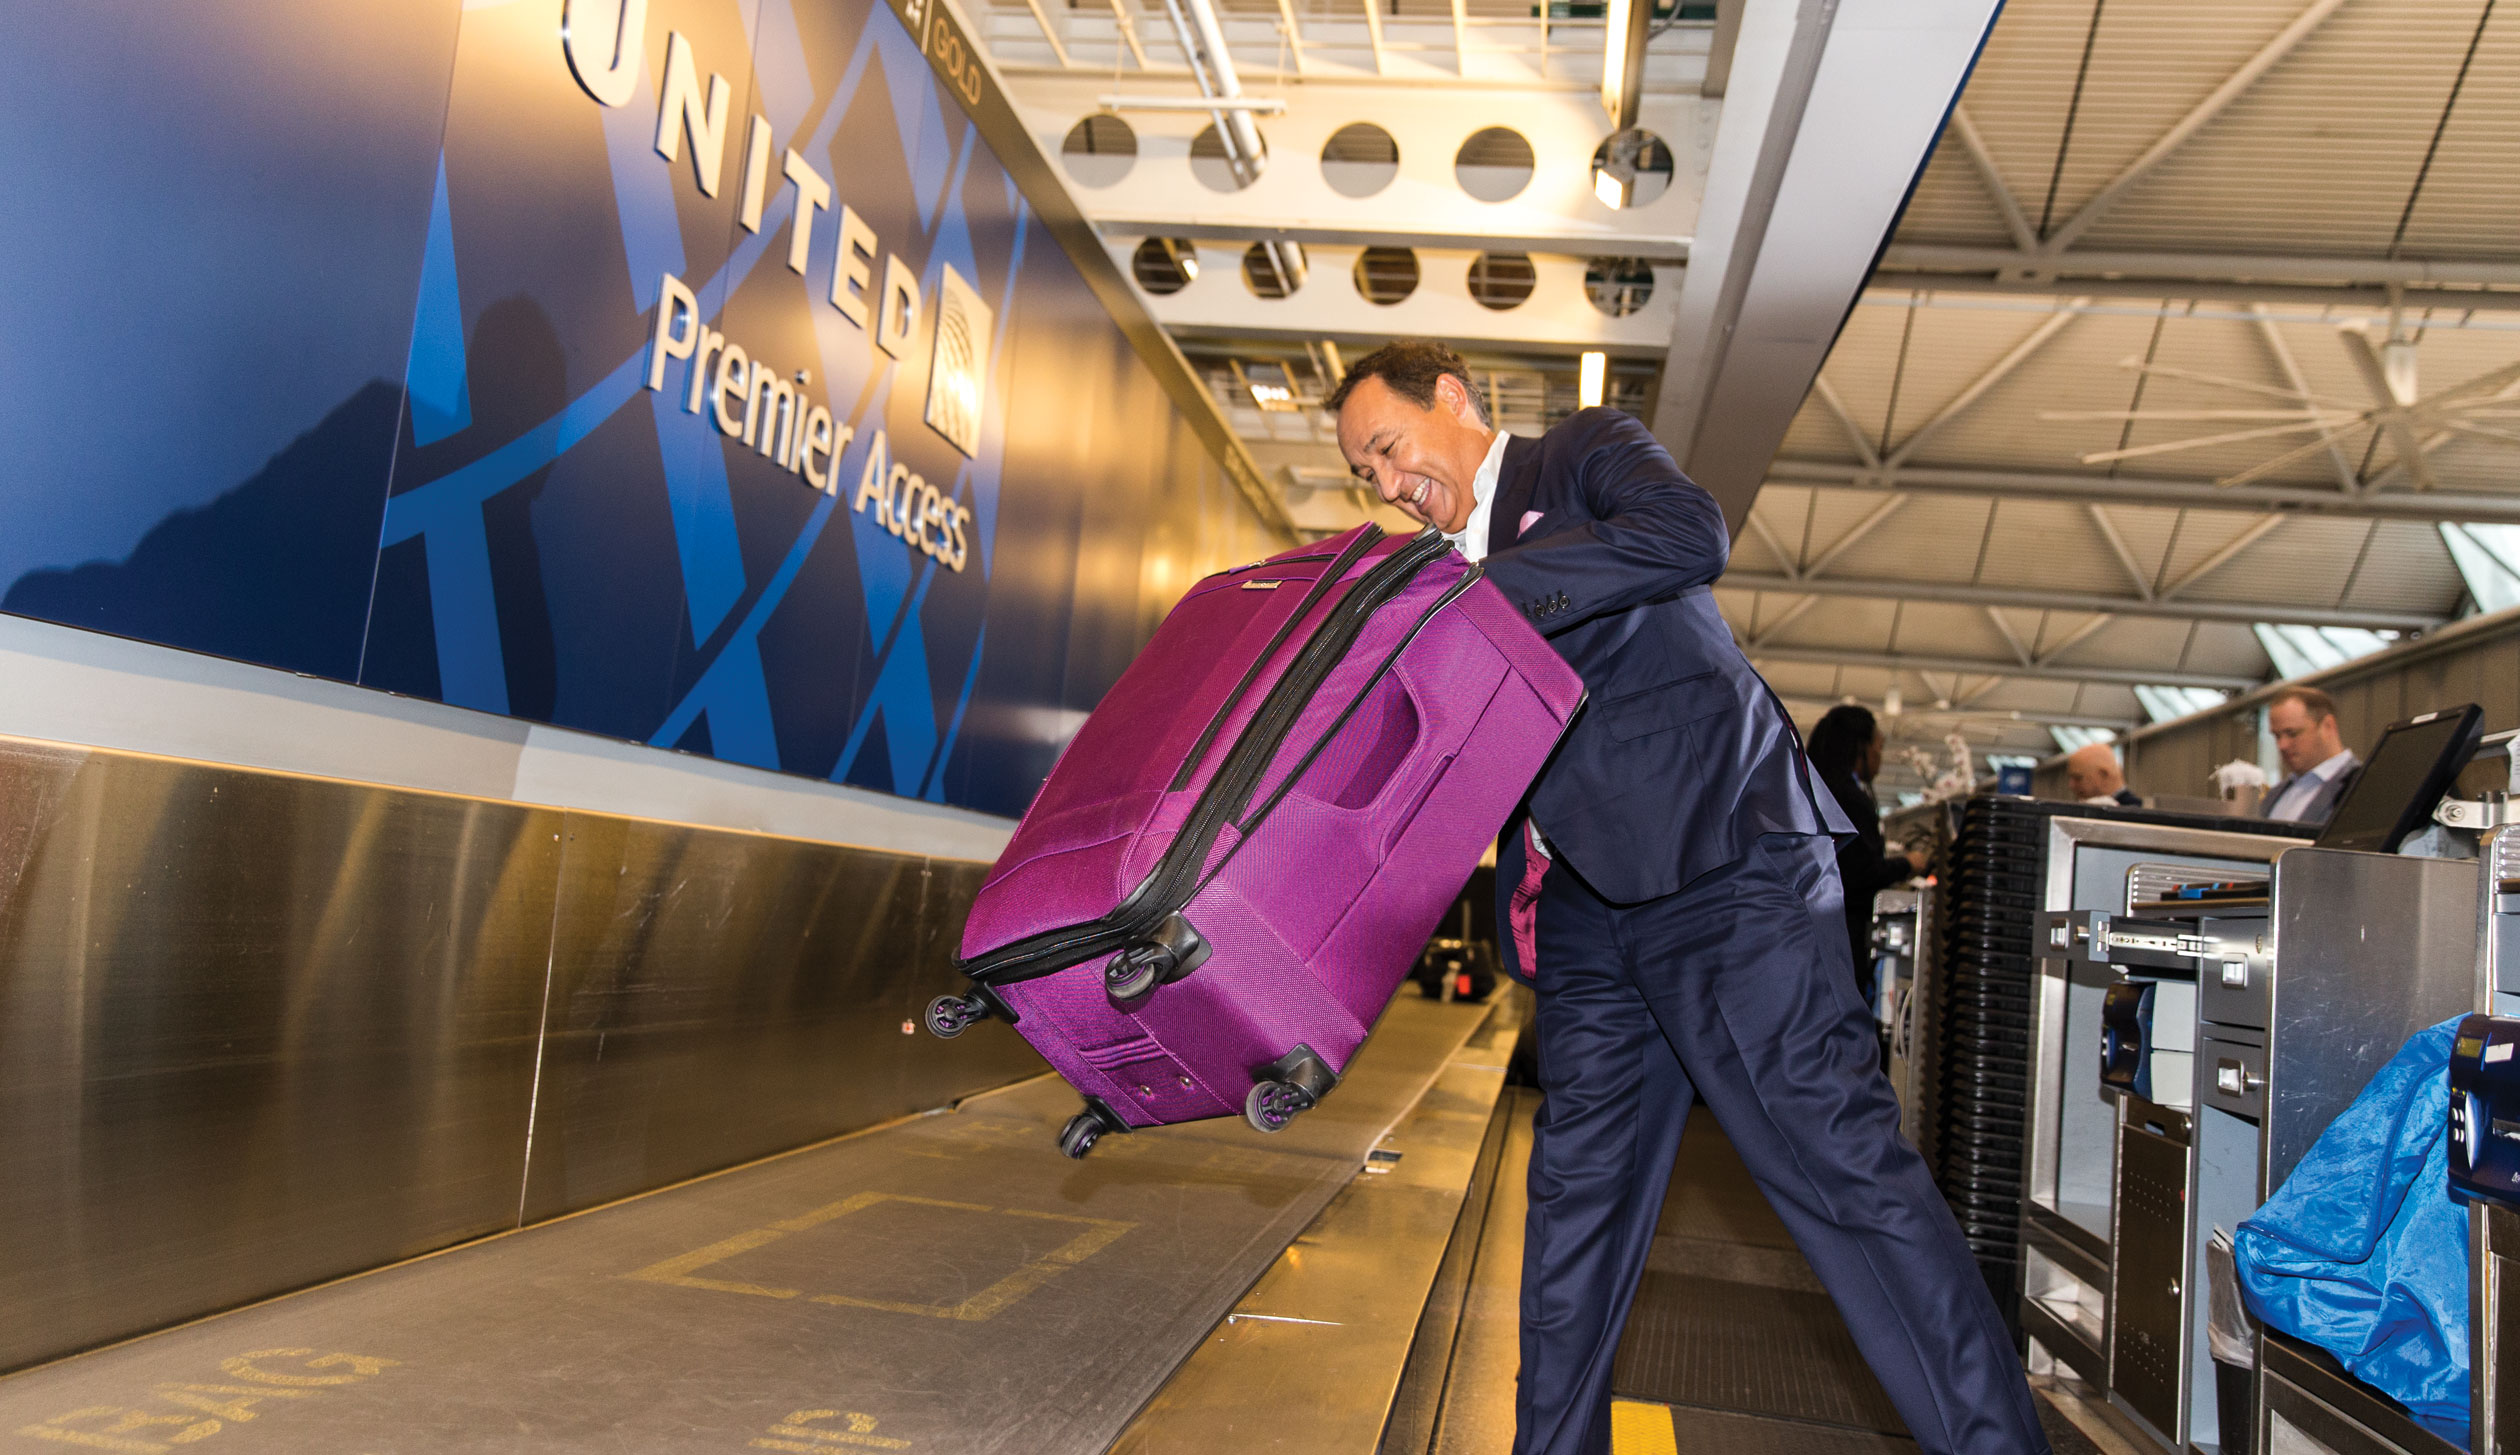 Munoz loads bags at United's check-in counter at O'hare.